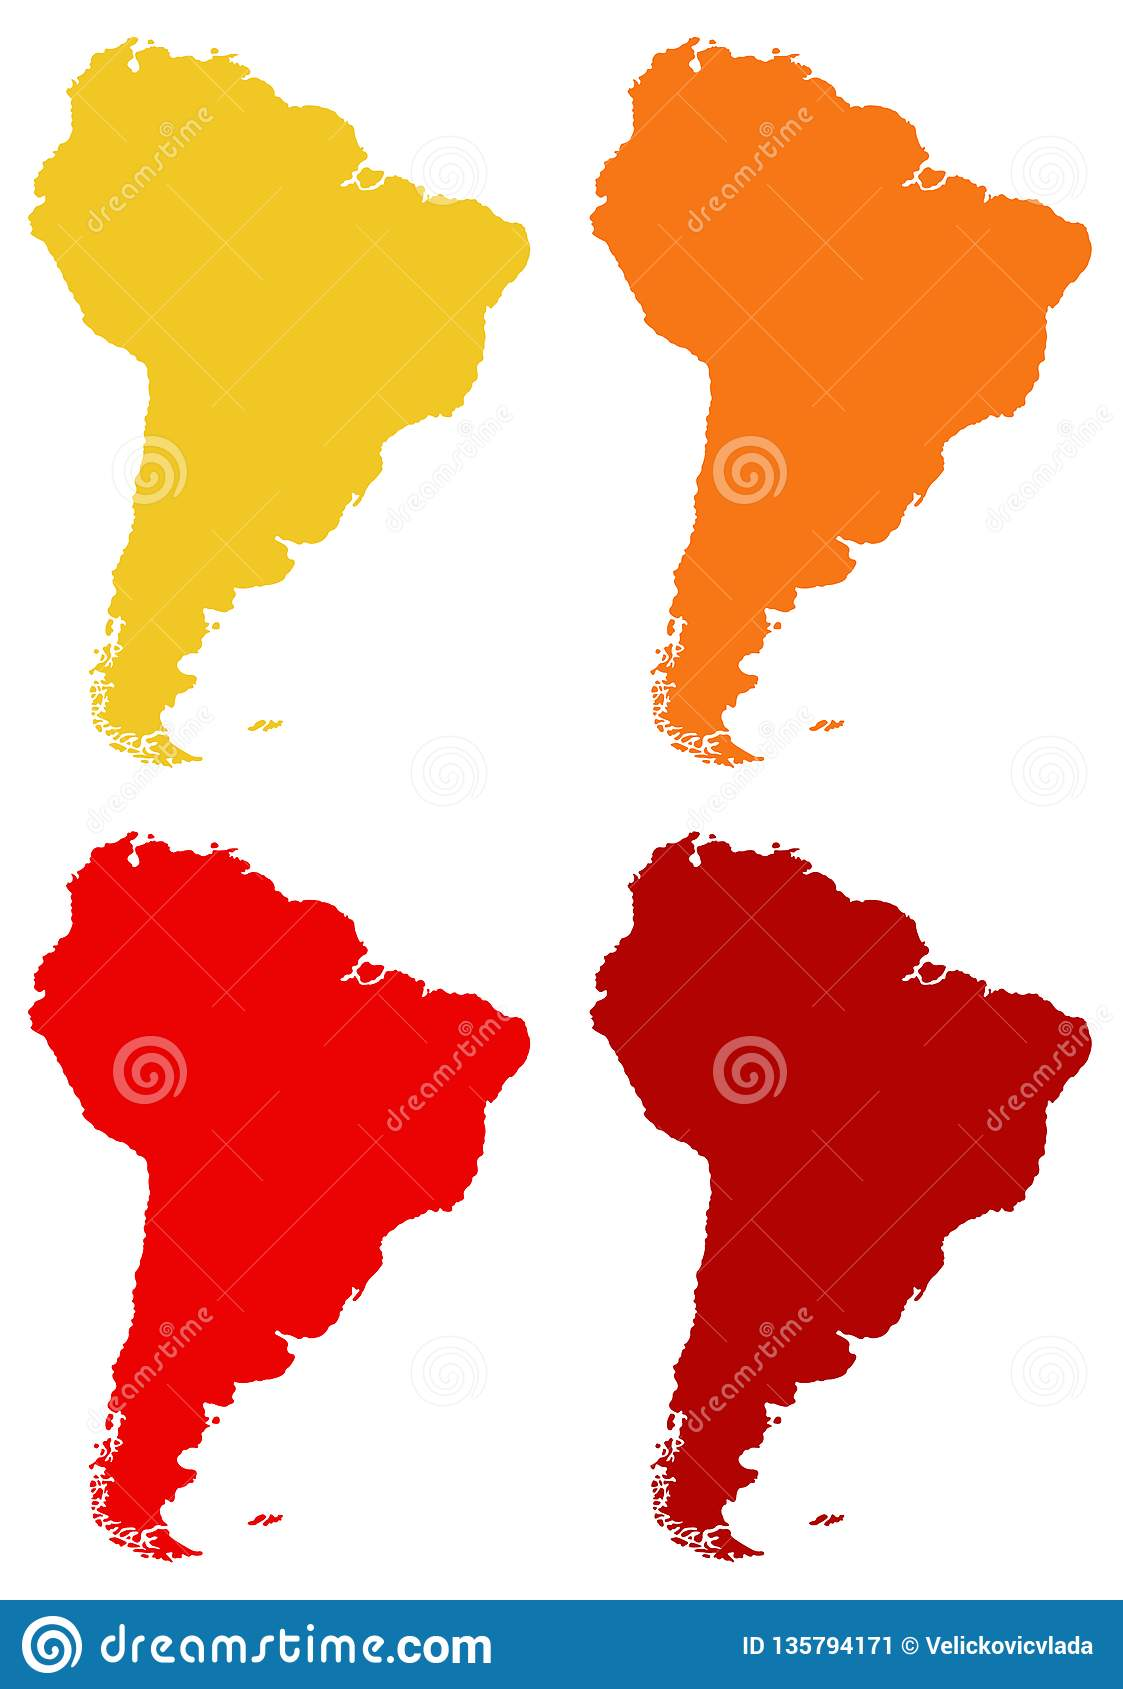 South America or Latin America map - continent in the world